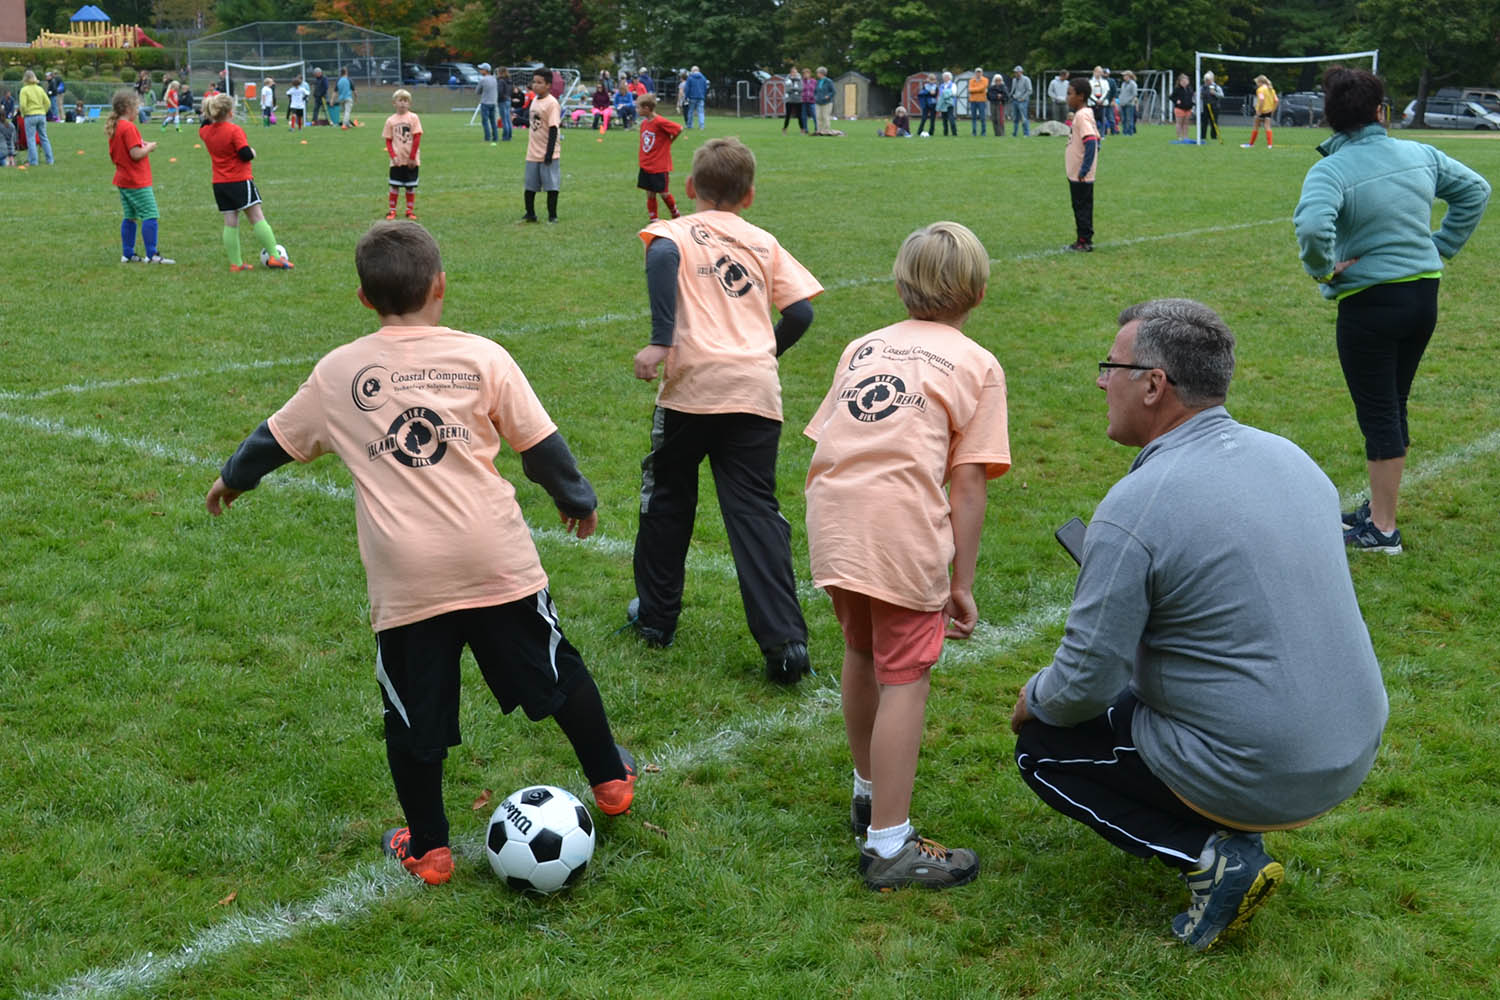 Our youth sports programs are all about teamwork, having fun, and good sportsmanship thanks to some amazing volunteers. Whether you've coached before or simply want to share your knowledge of game, we're always appreciative of those able to lend a hand.